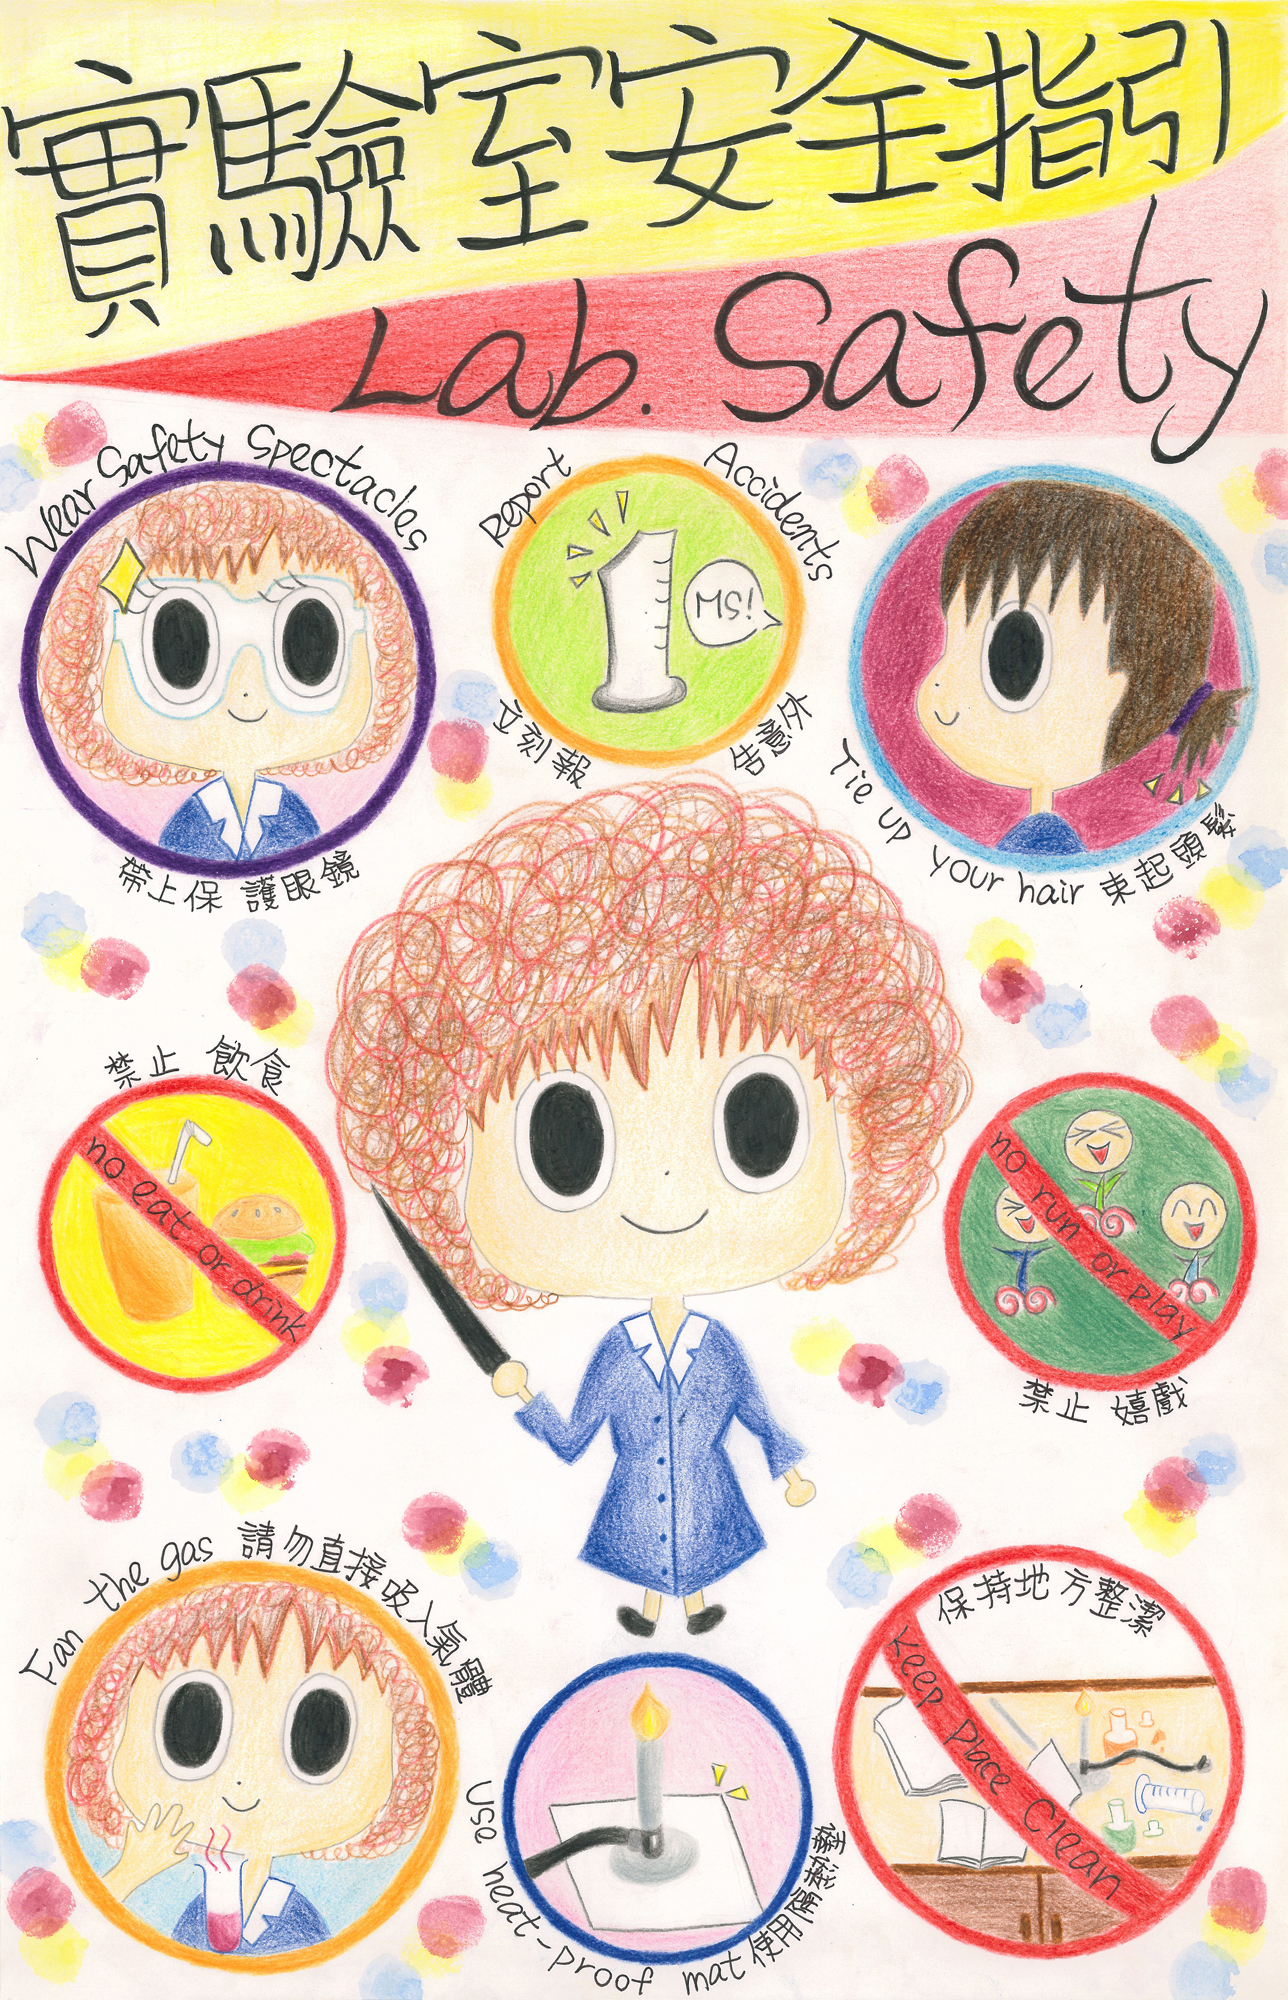 Laboratory Safety Poster Design Competition